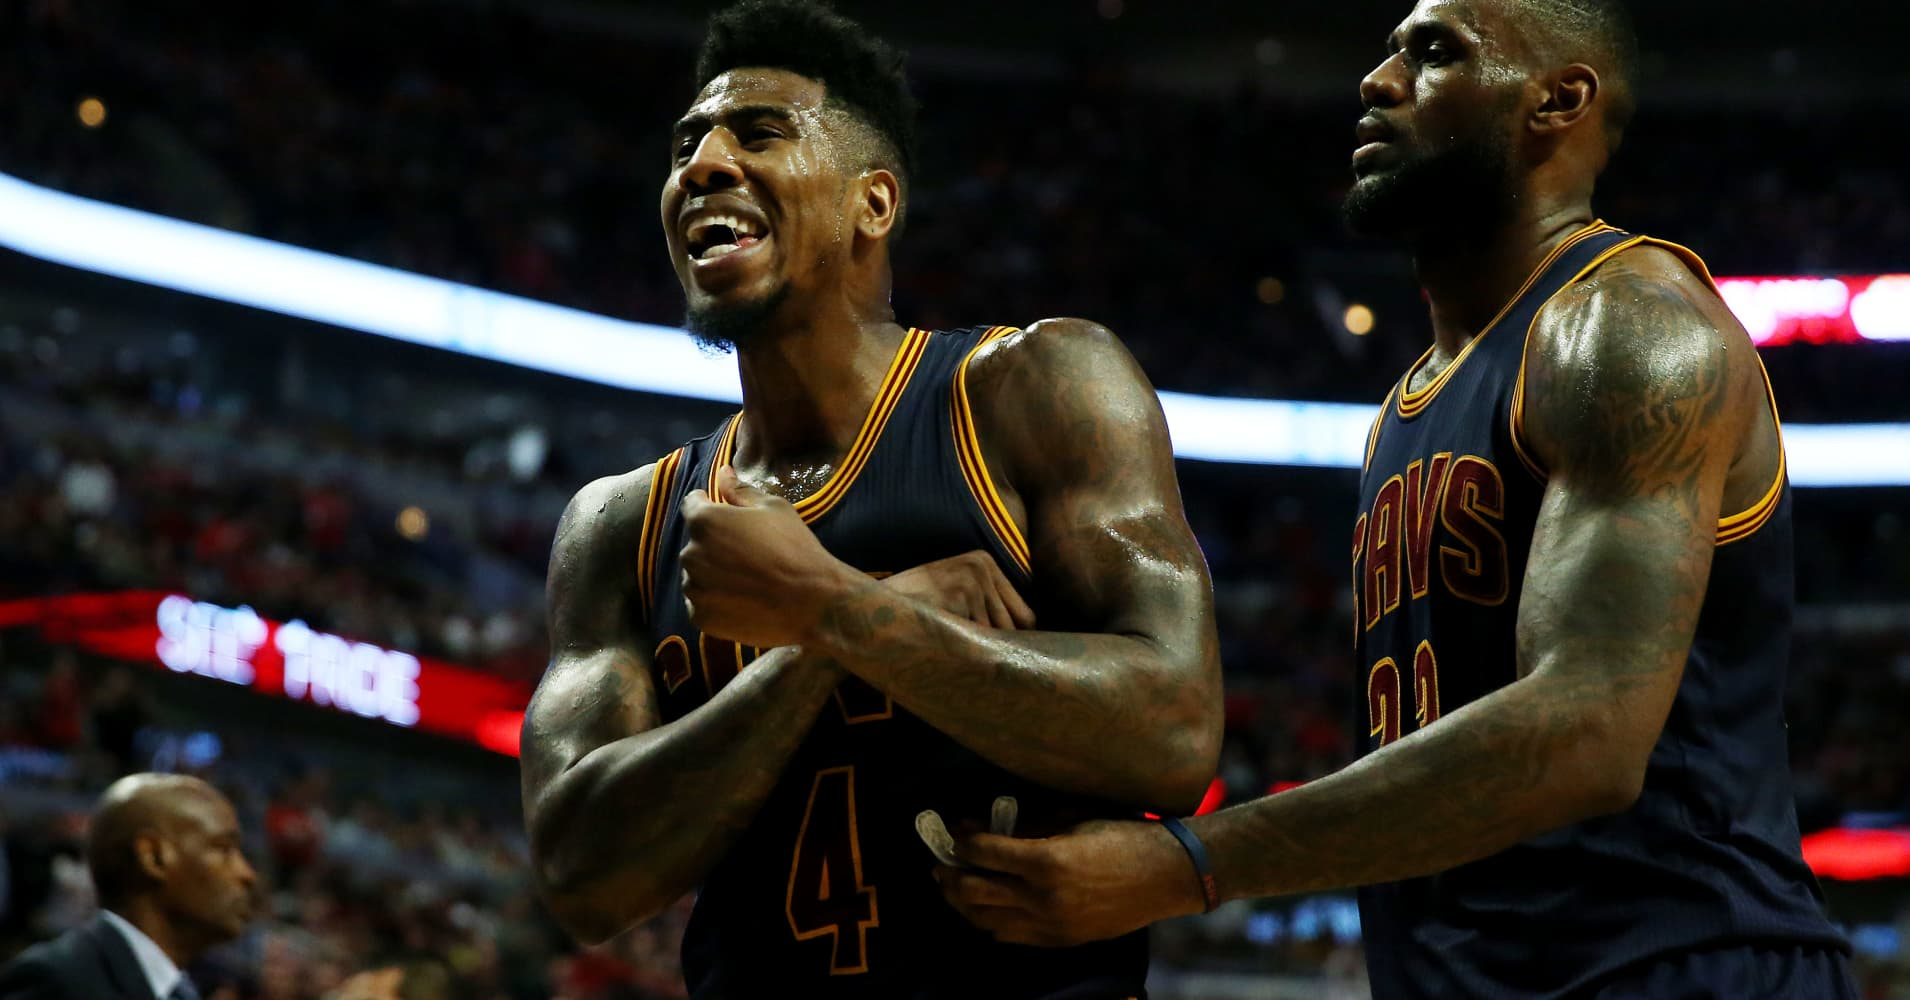 Iman Shumpert and LeBron James of the Cleveland Cavaliers